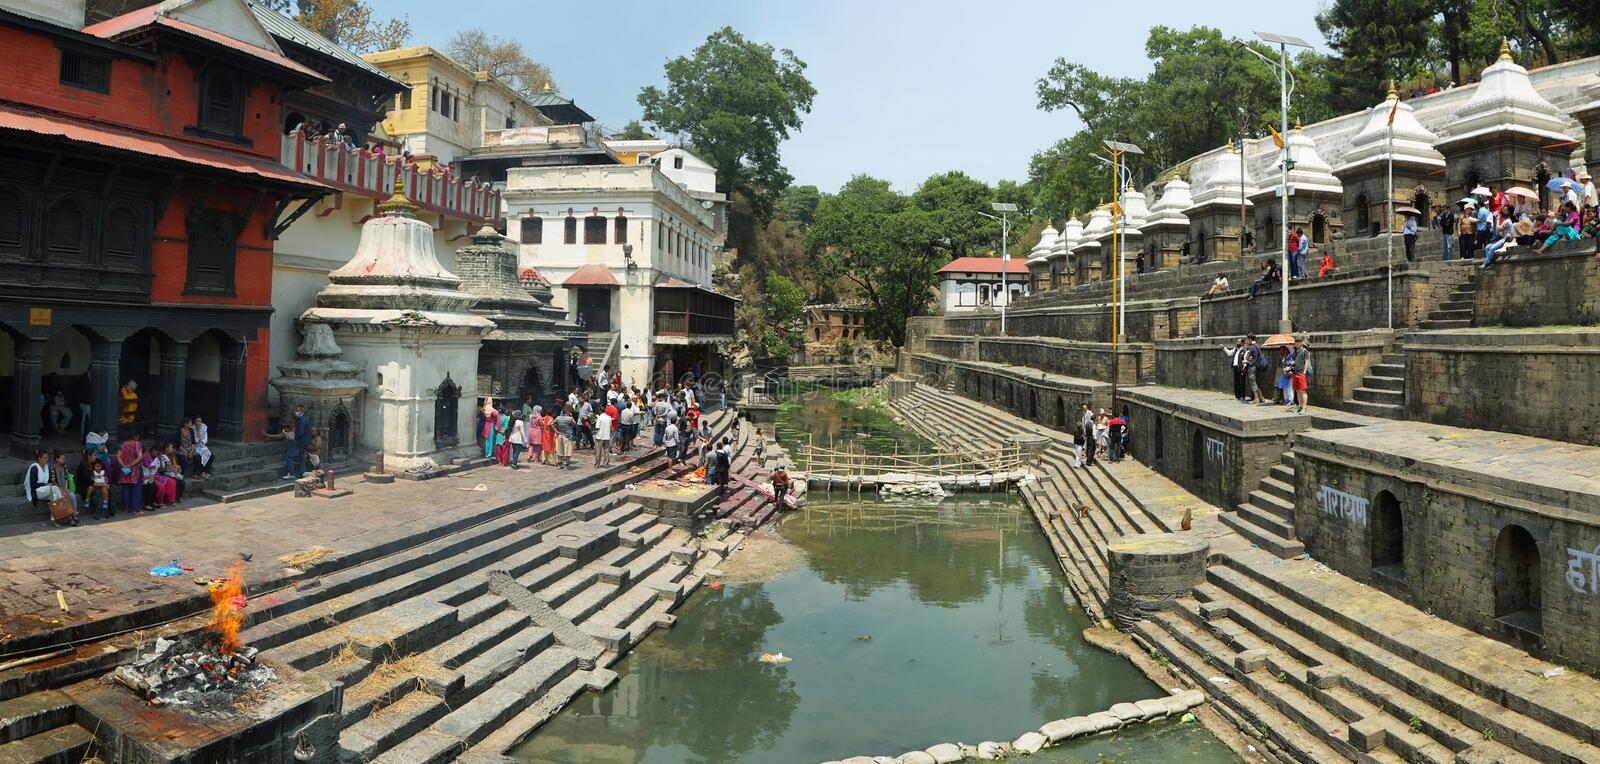 Cremation in sacred Hindu temple dedicated to Pashupatinath in Kathmandu, Nepal. KATHMANDU, NEPAL - APRIL 20, 2016: people around covered dead before cremation royalty free stock photo